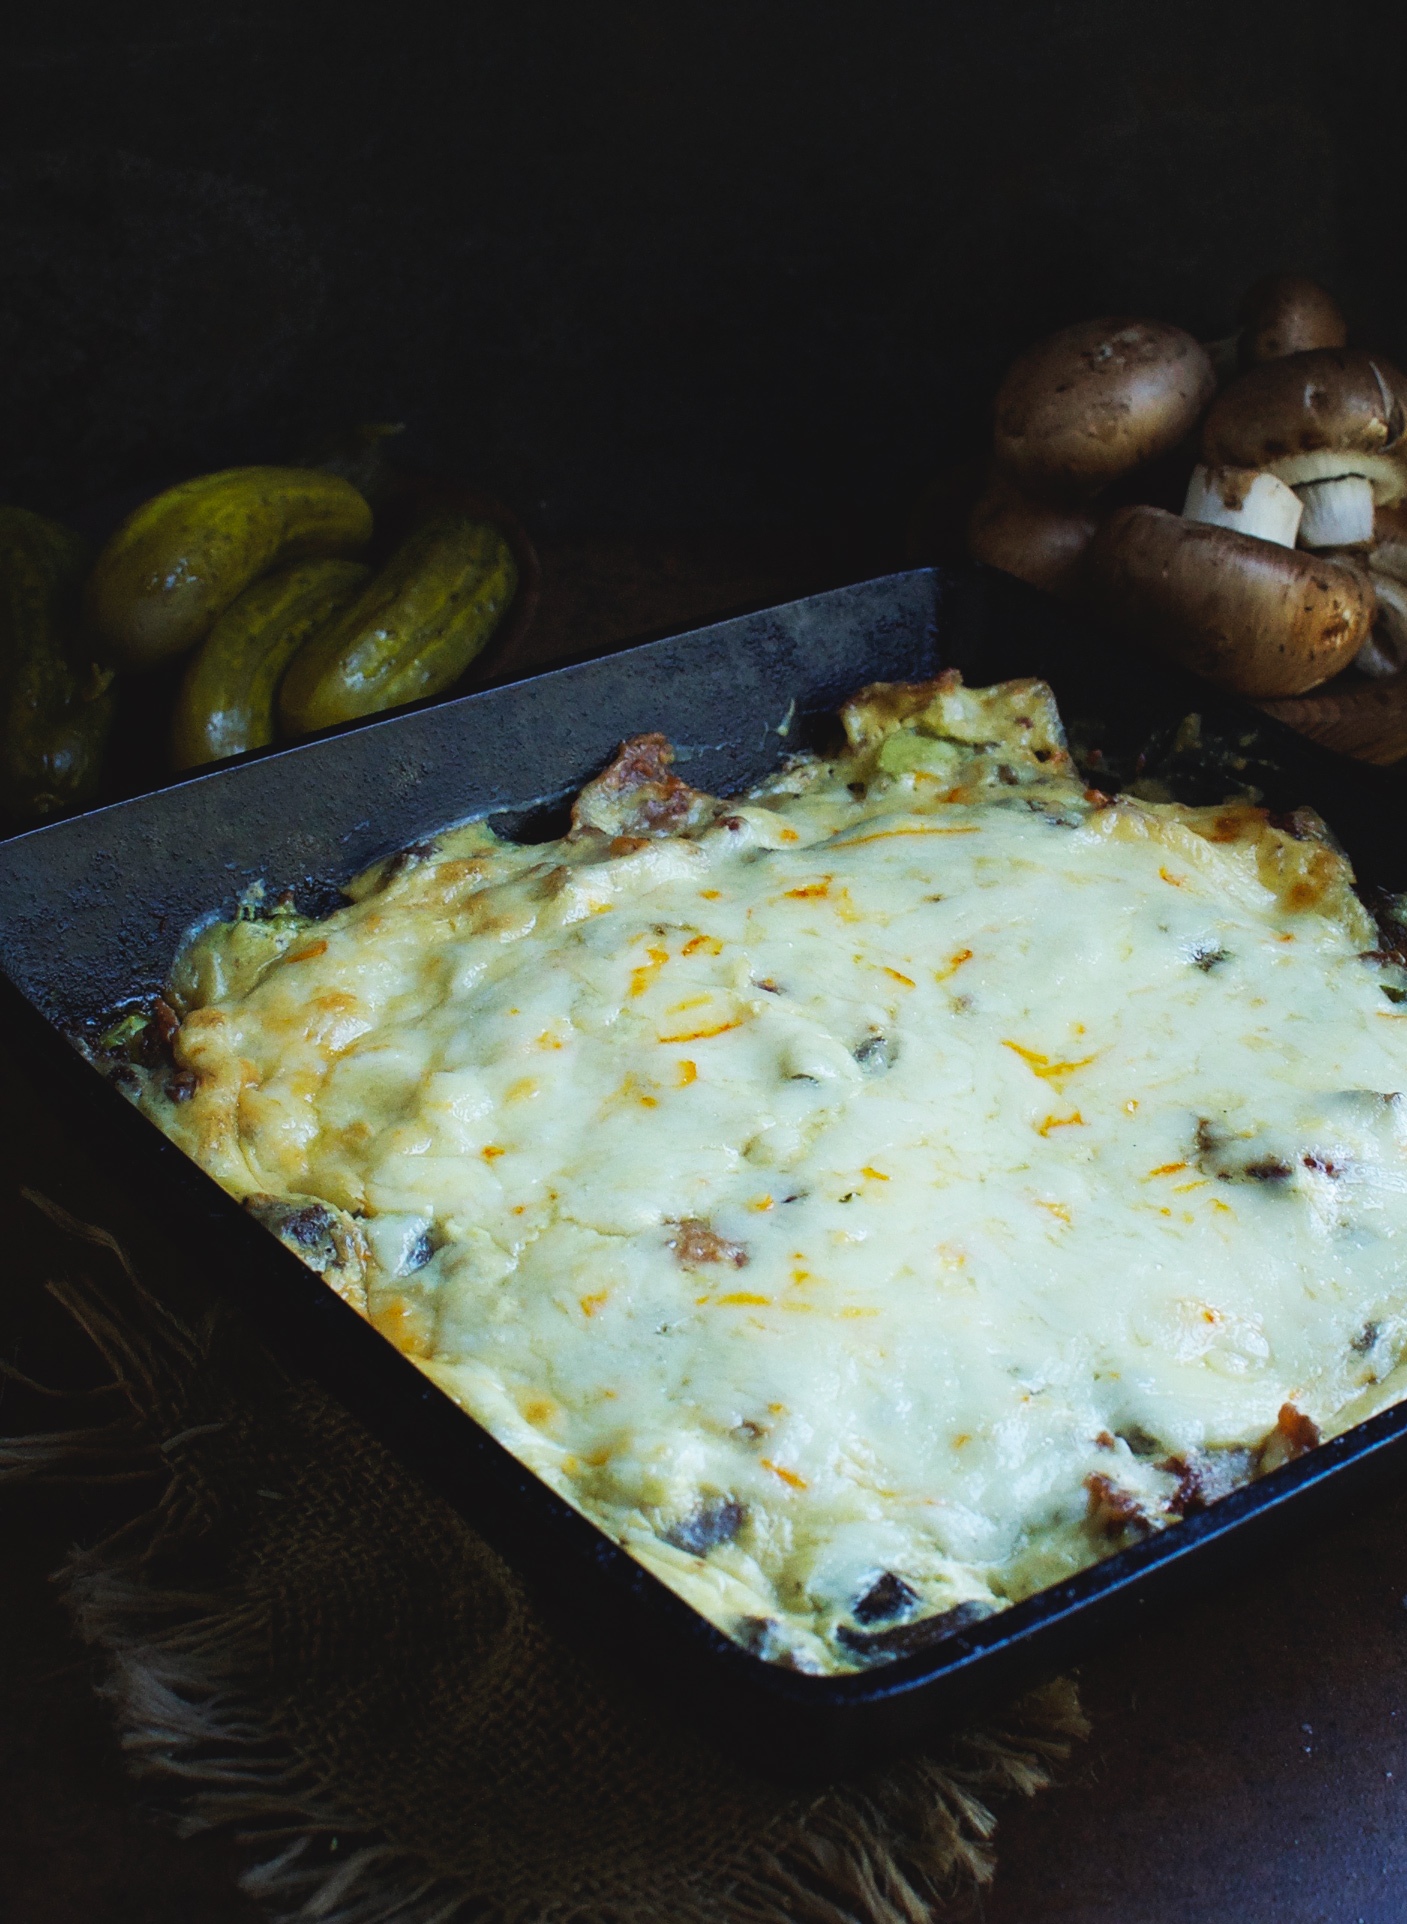 Casserole fresh out of the oven